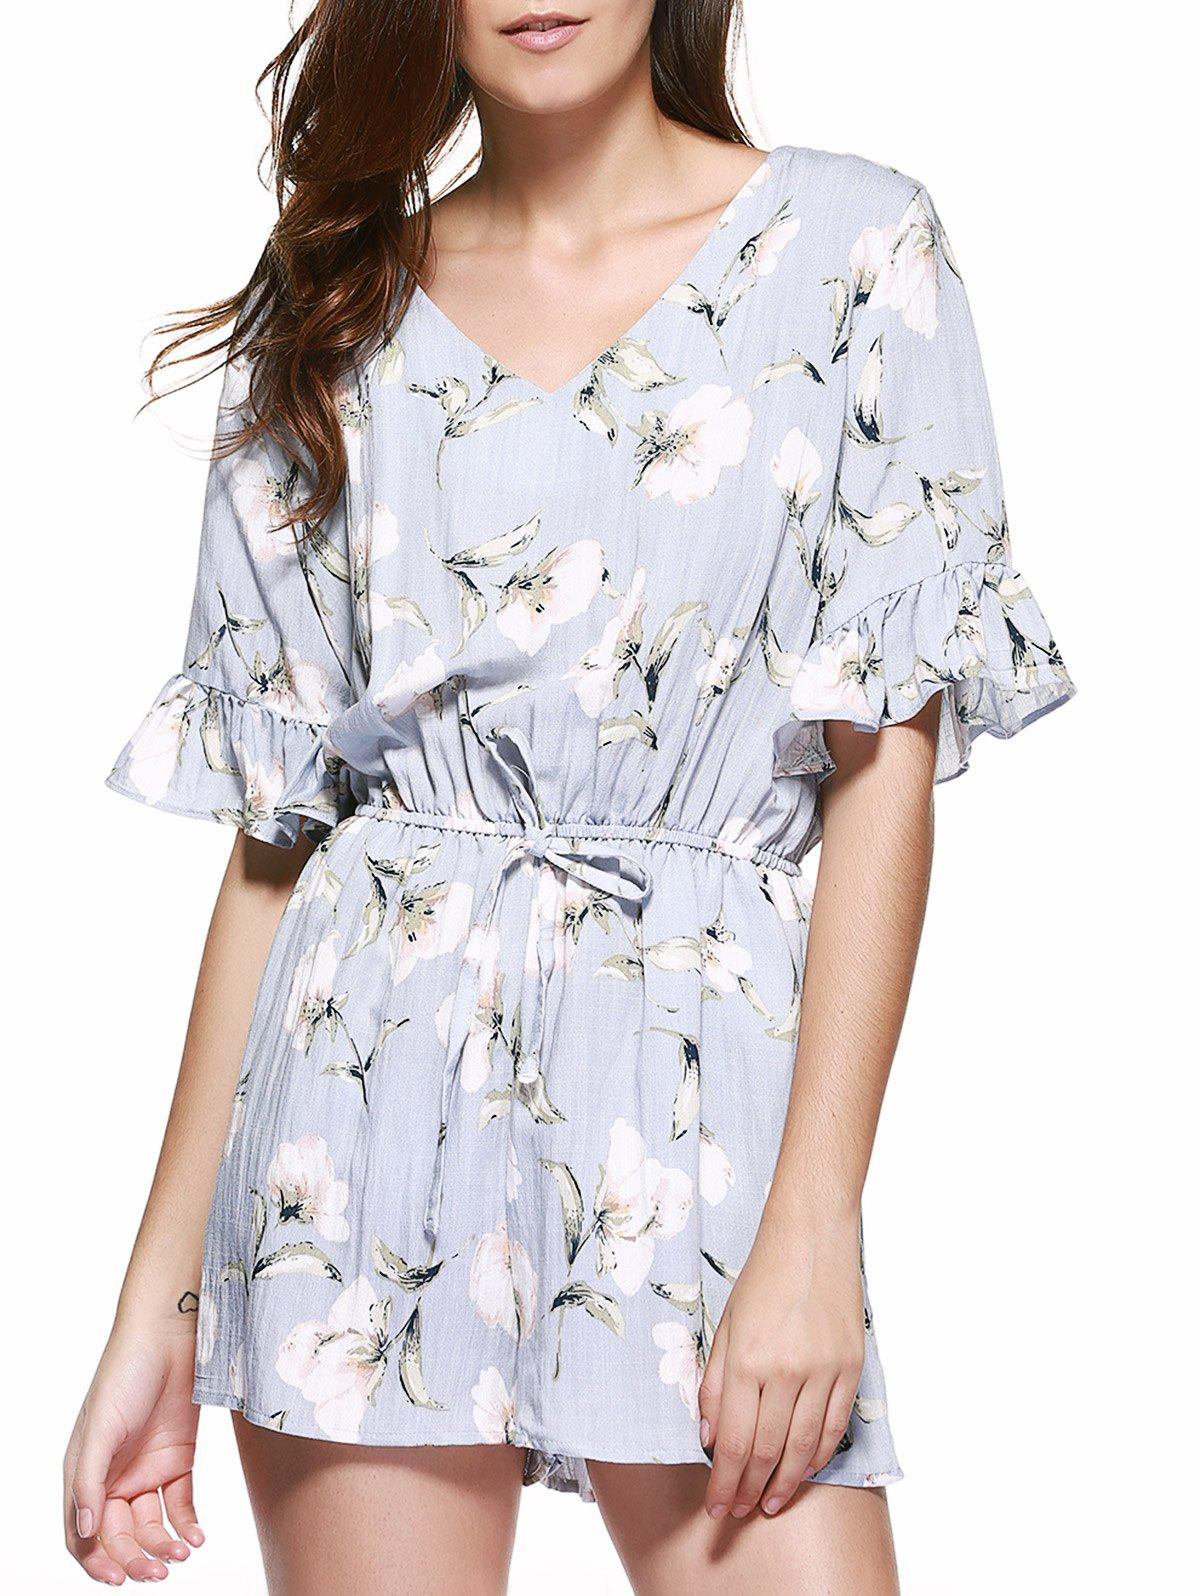 Refreshing V-Neck Ruffles Sleeve Flower Print Romper For Women - LIGHT BLUE ONE SIZE(FIT SIZE XS TO M)